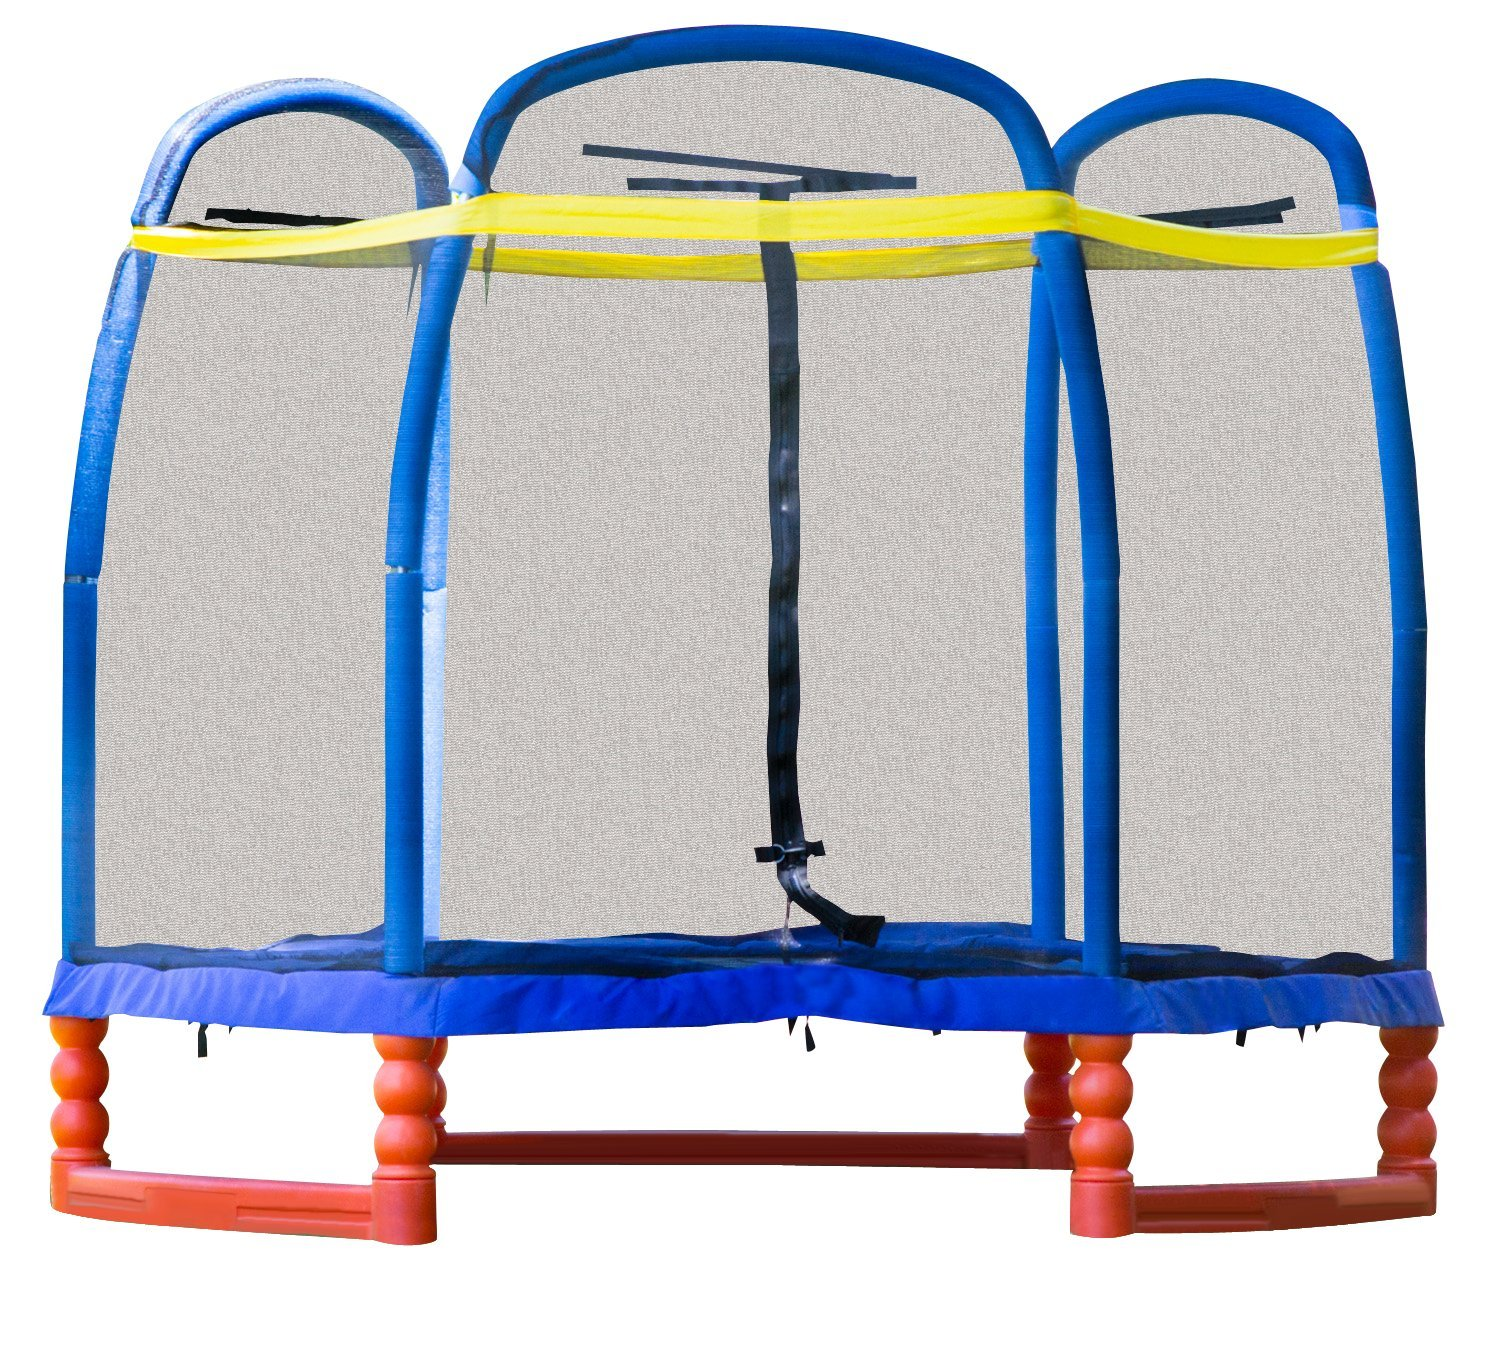 Safest Top Rated Trampolines: 50 Best And Safest Trampolines Of 2019: Guide & Reviews